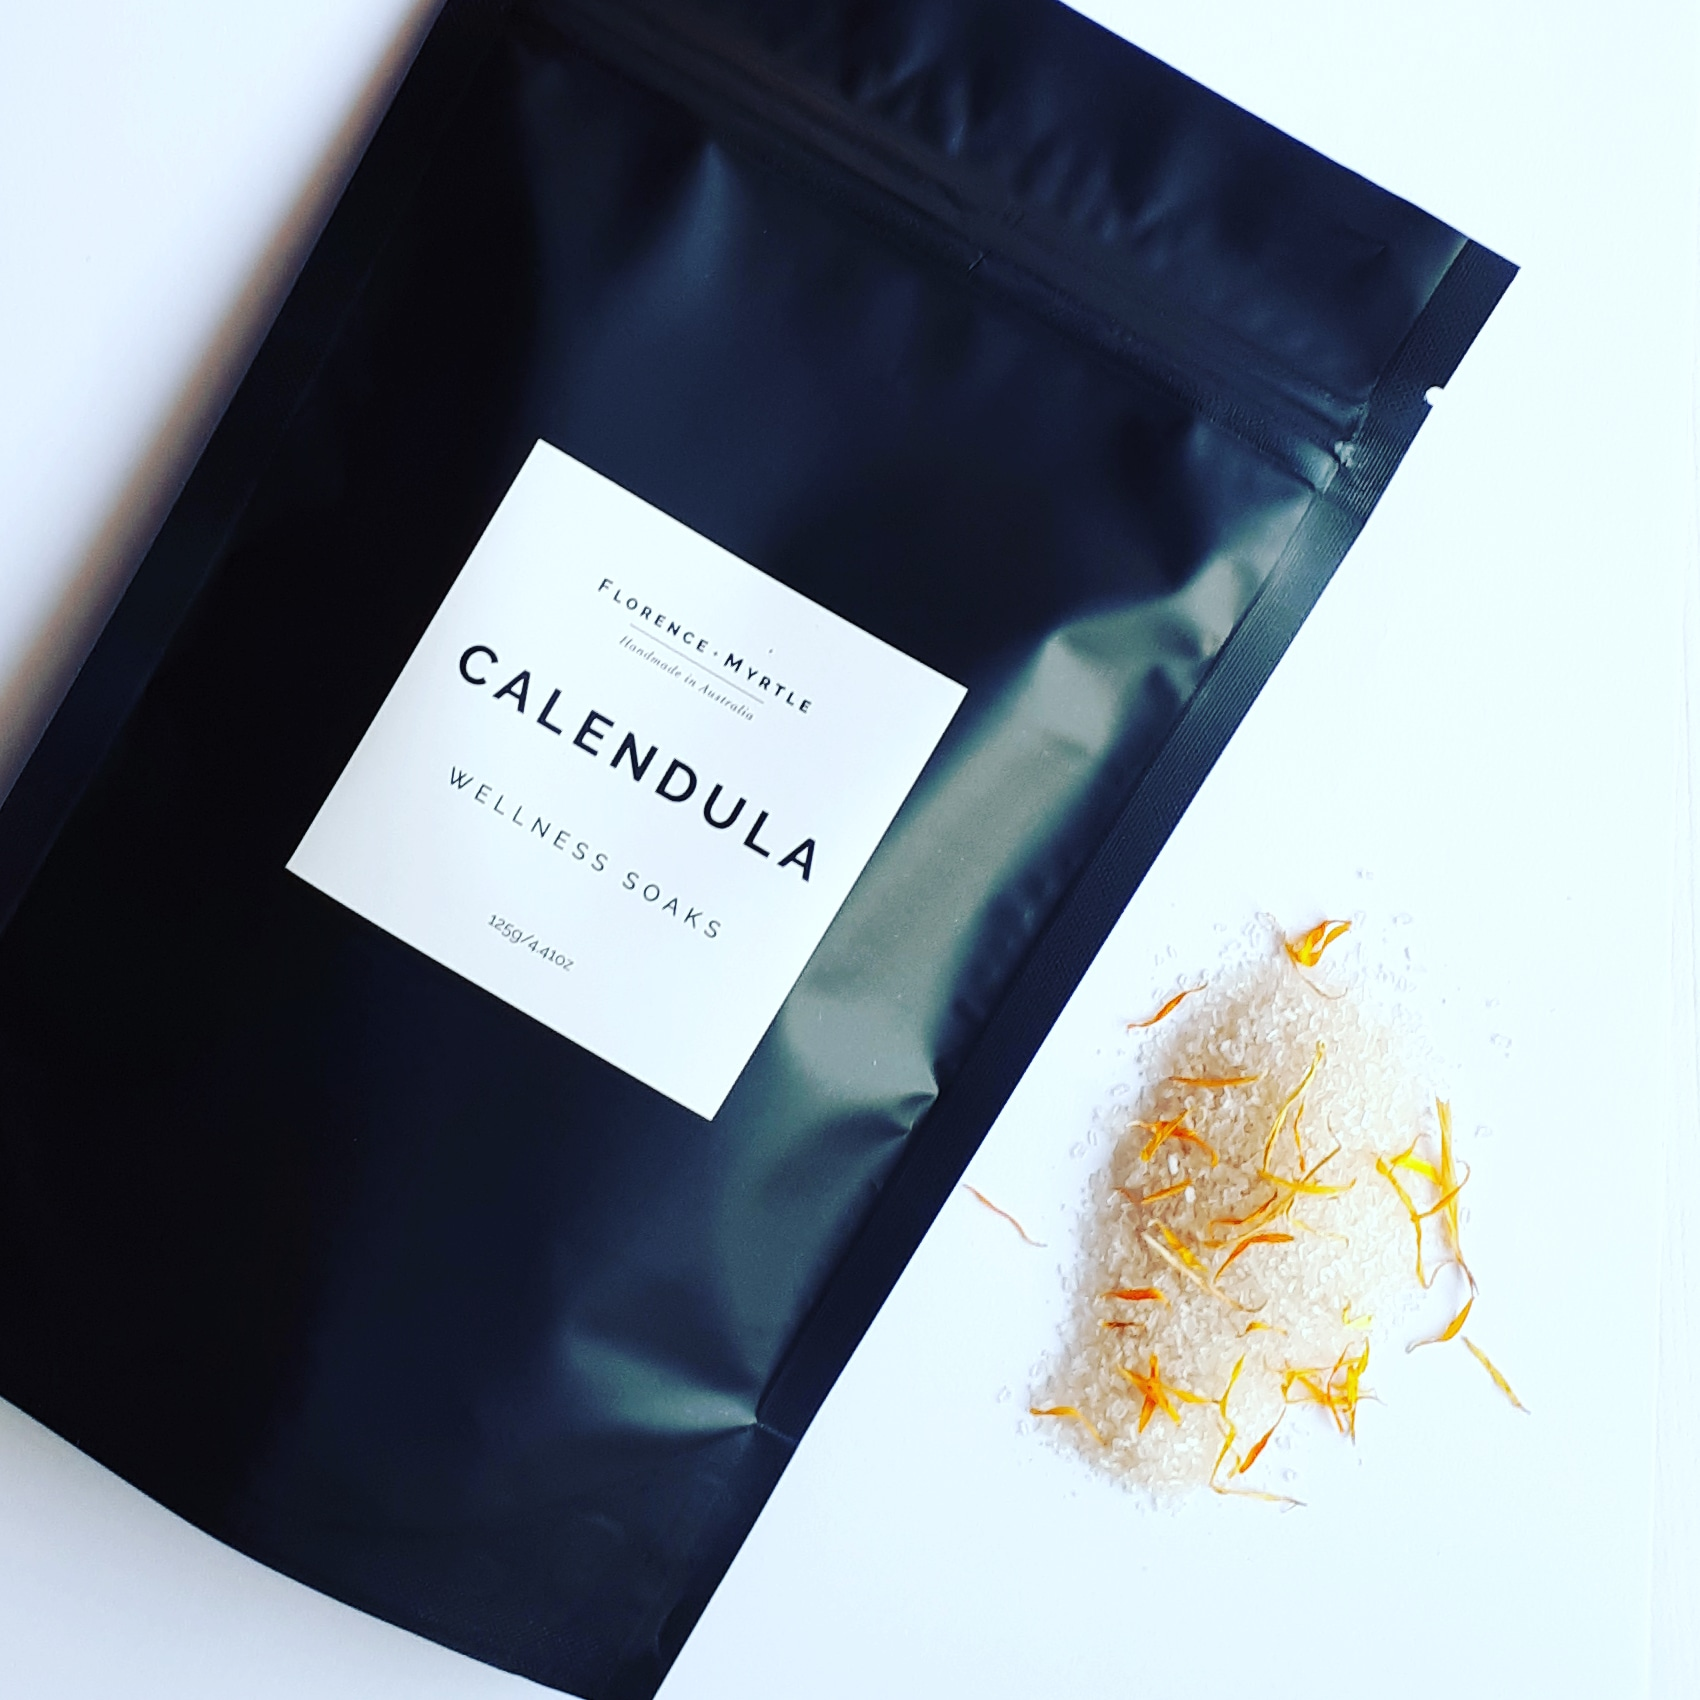 Calendula Wellness Soak